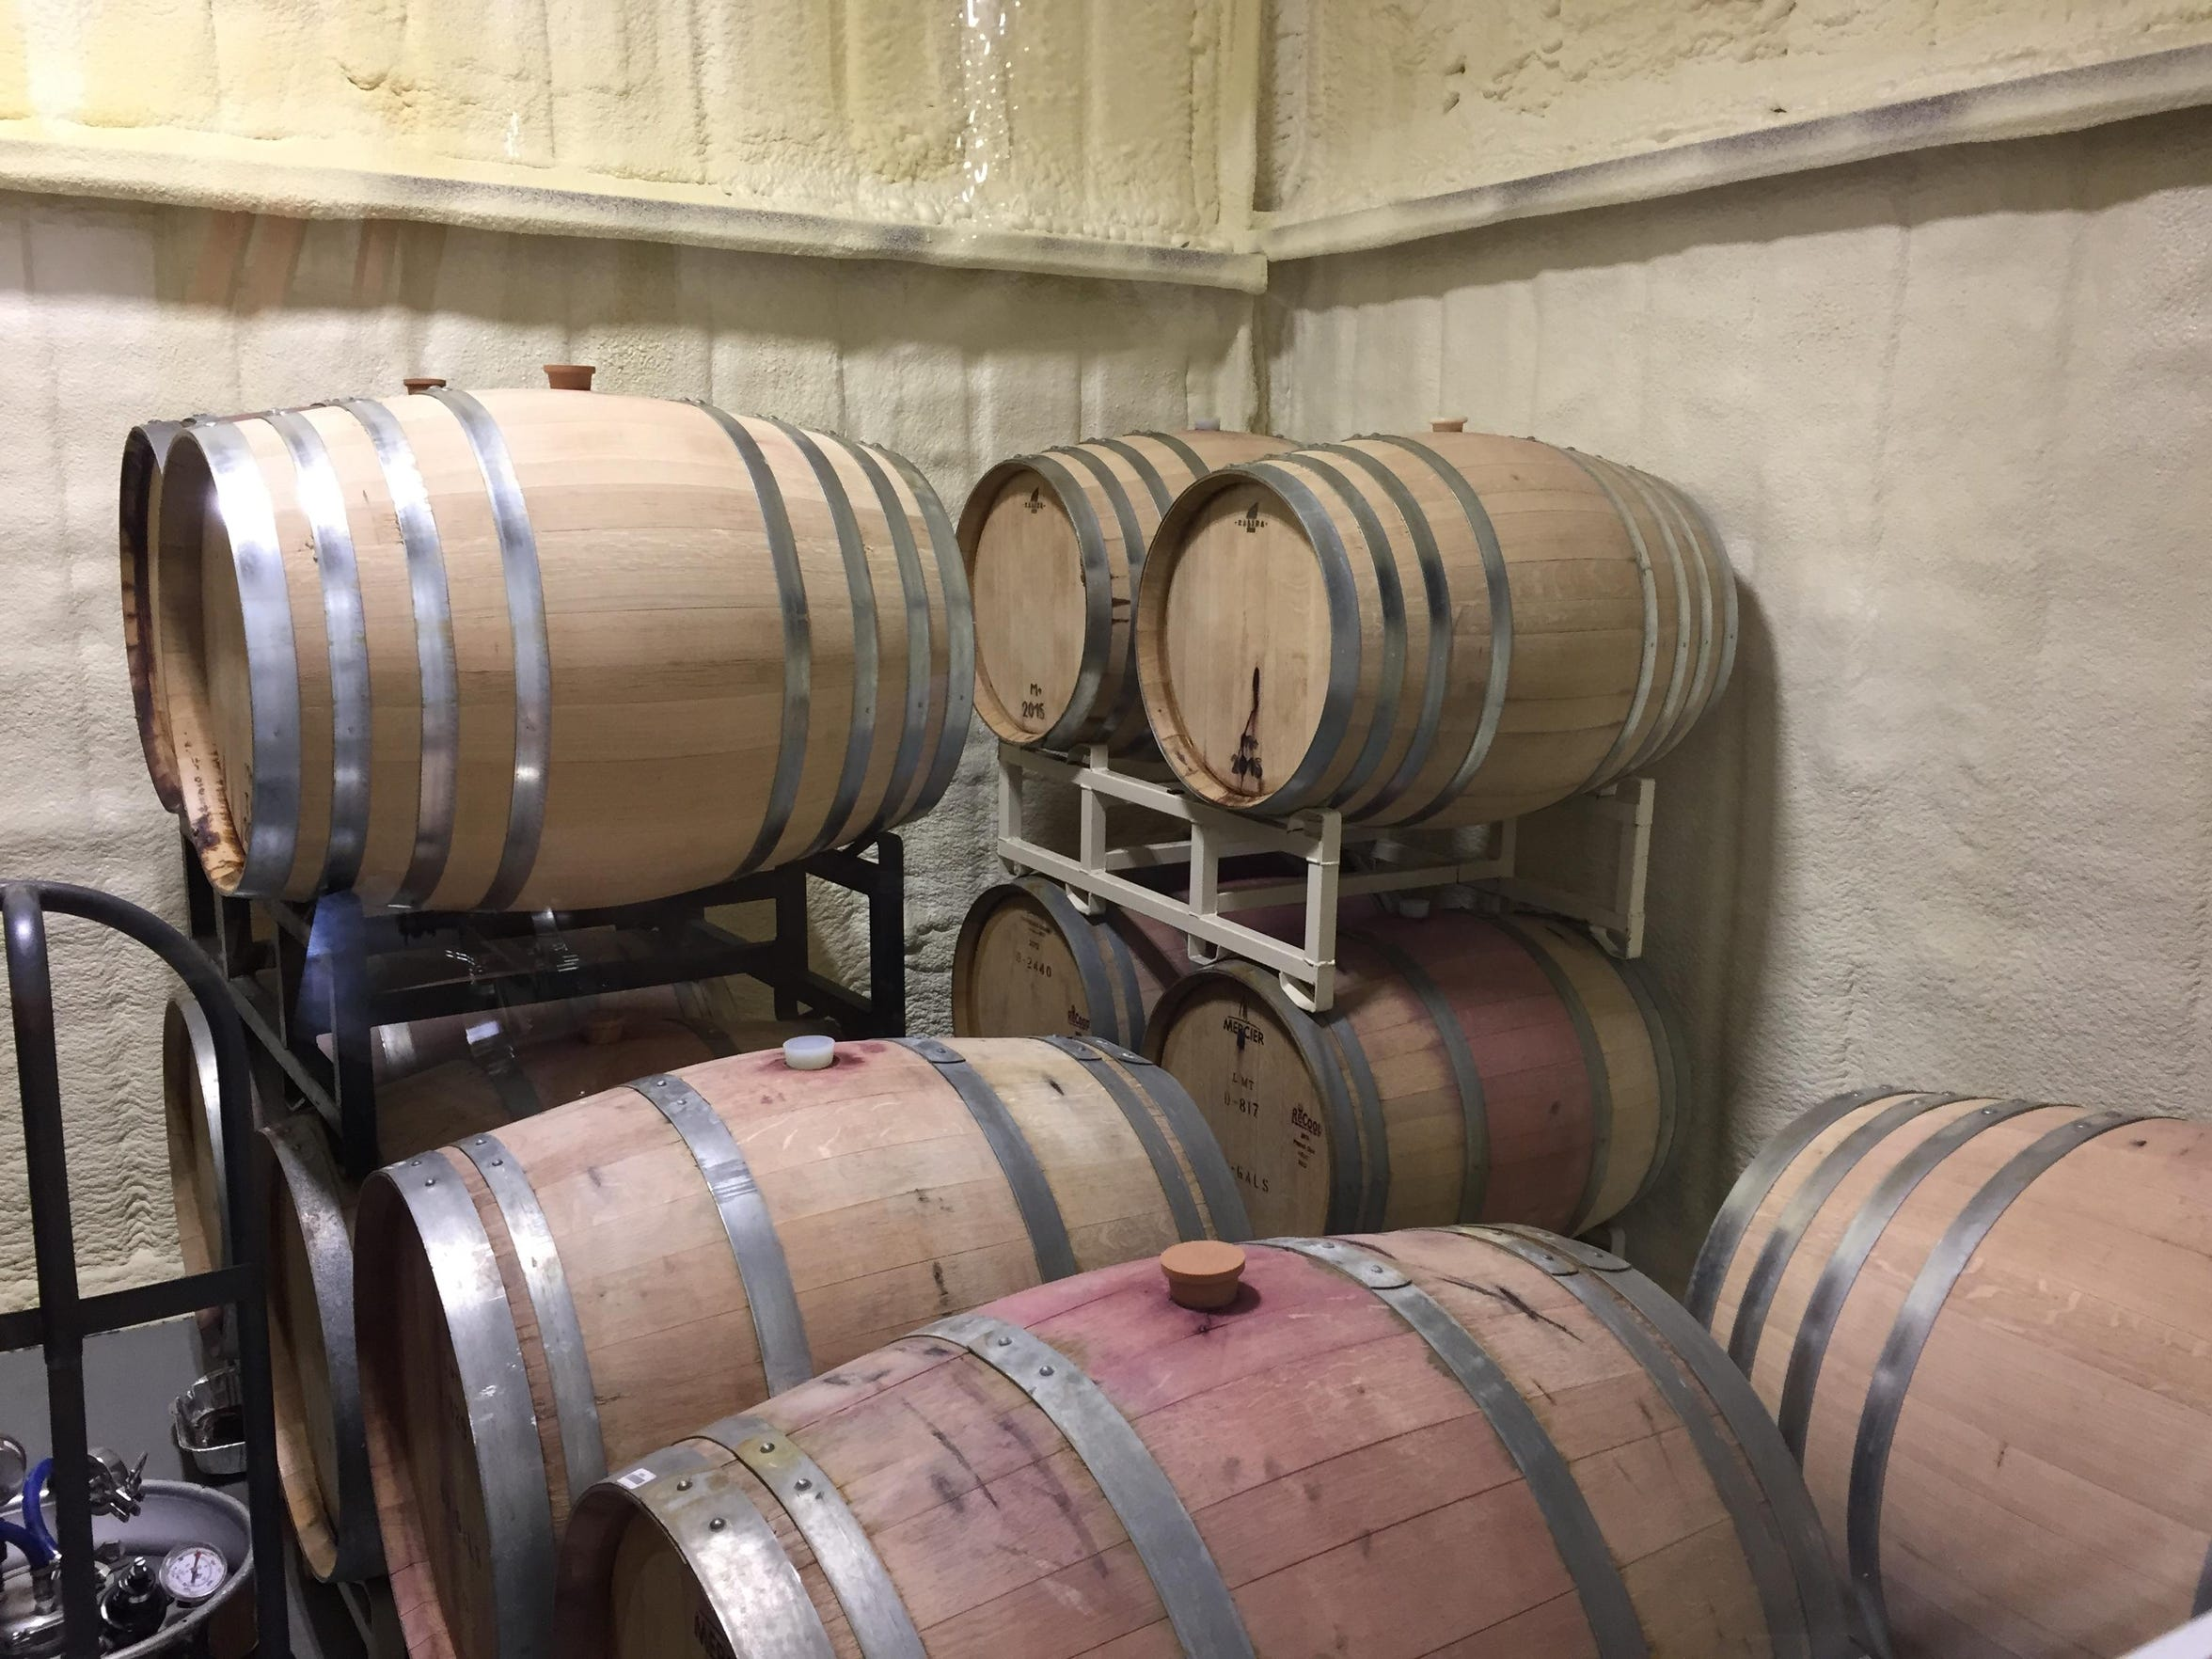 Casks of Madiera rest in a special, heated room. The